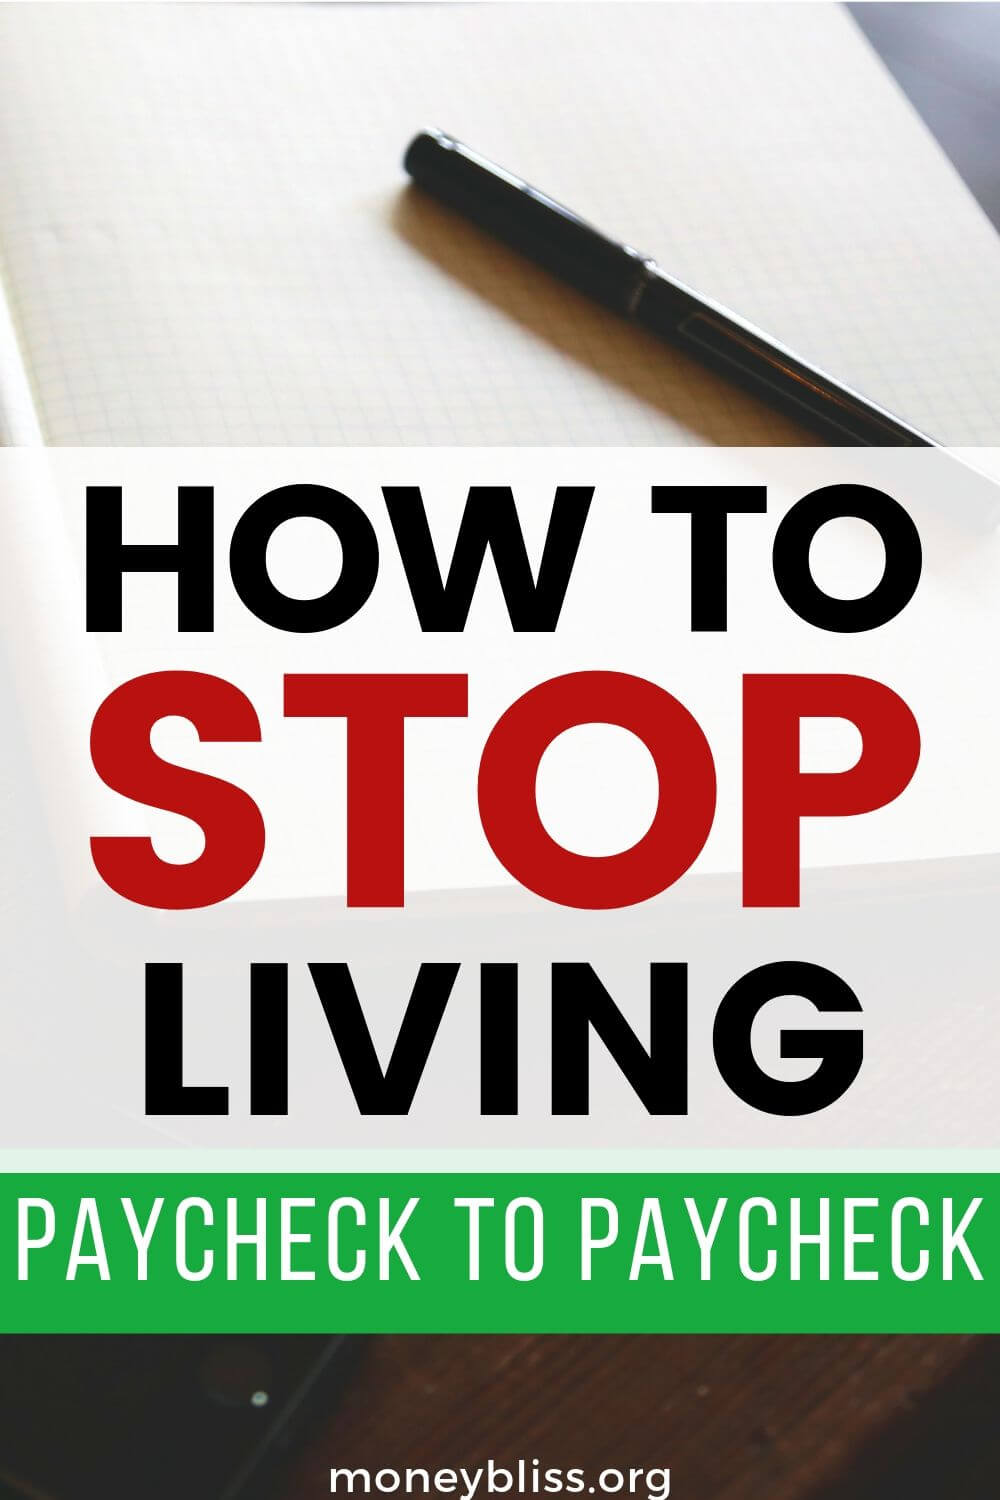 Learn the warning signs of living paycheck to paycheck. Then, use these simple tips to stop living paycheck to paycheck today! It is possible to get ahead with budgeting. Pay off debt and save money.